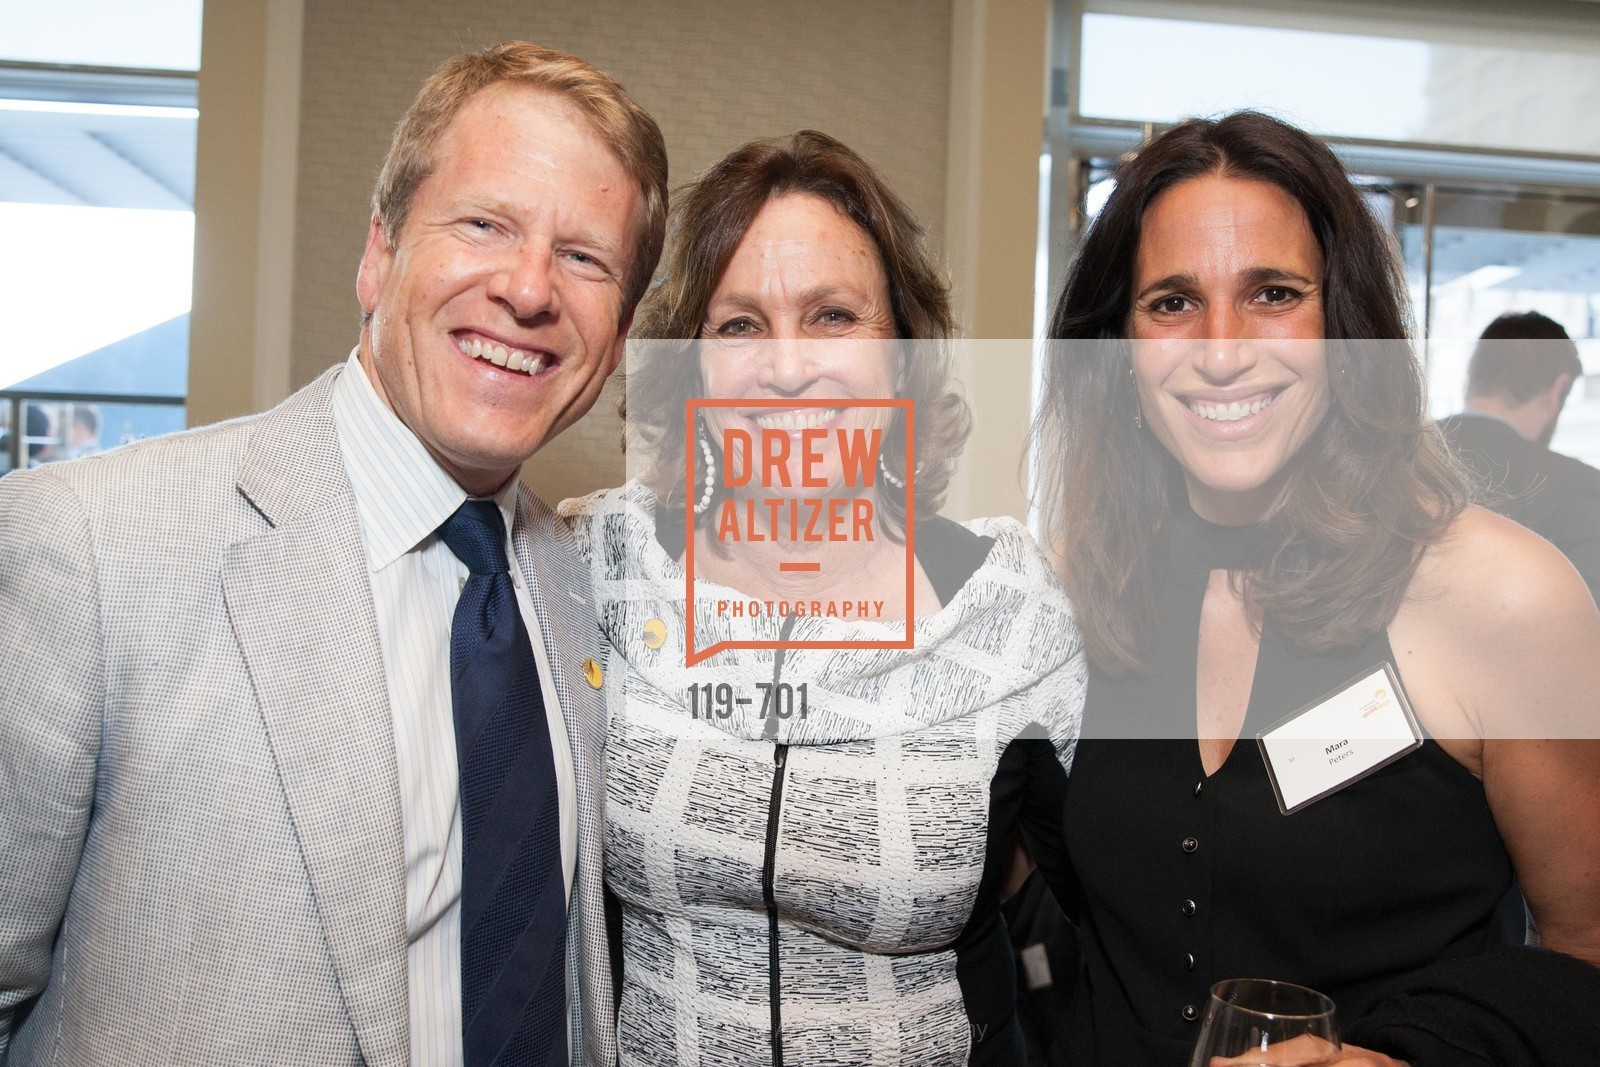 Erik Christoffsersen, Linda Mornell, Mara Peters, SUMMER SEARCH San Francisco 25th Anniversary, US, May 7th, 2015,Drew Altizer, Drew Altizer Photography, full-service event agency, private events, San Francisco photographer, photographer California